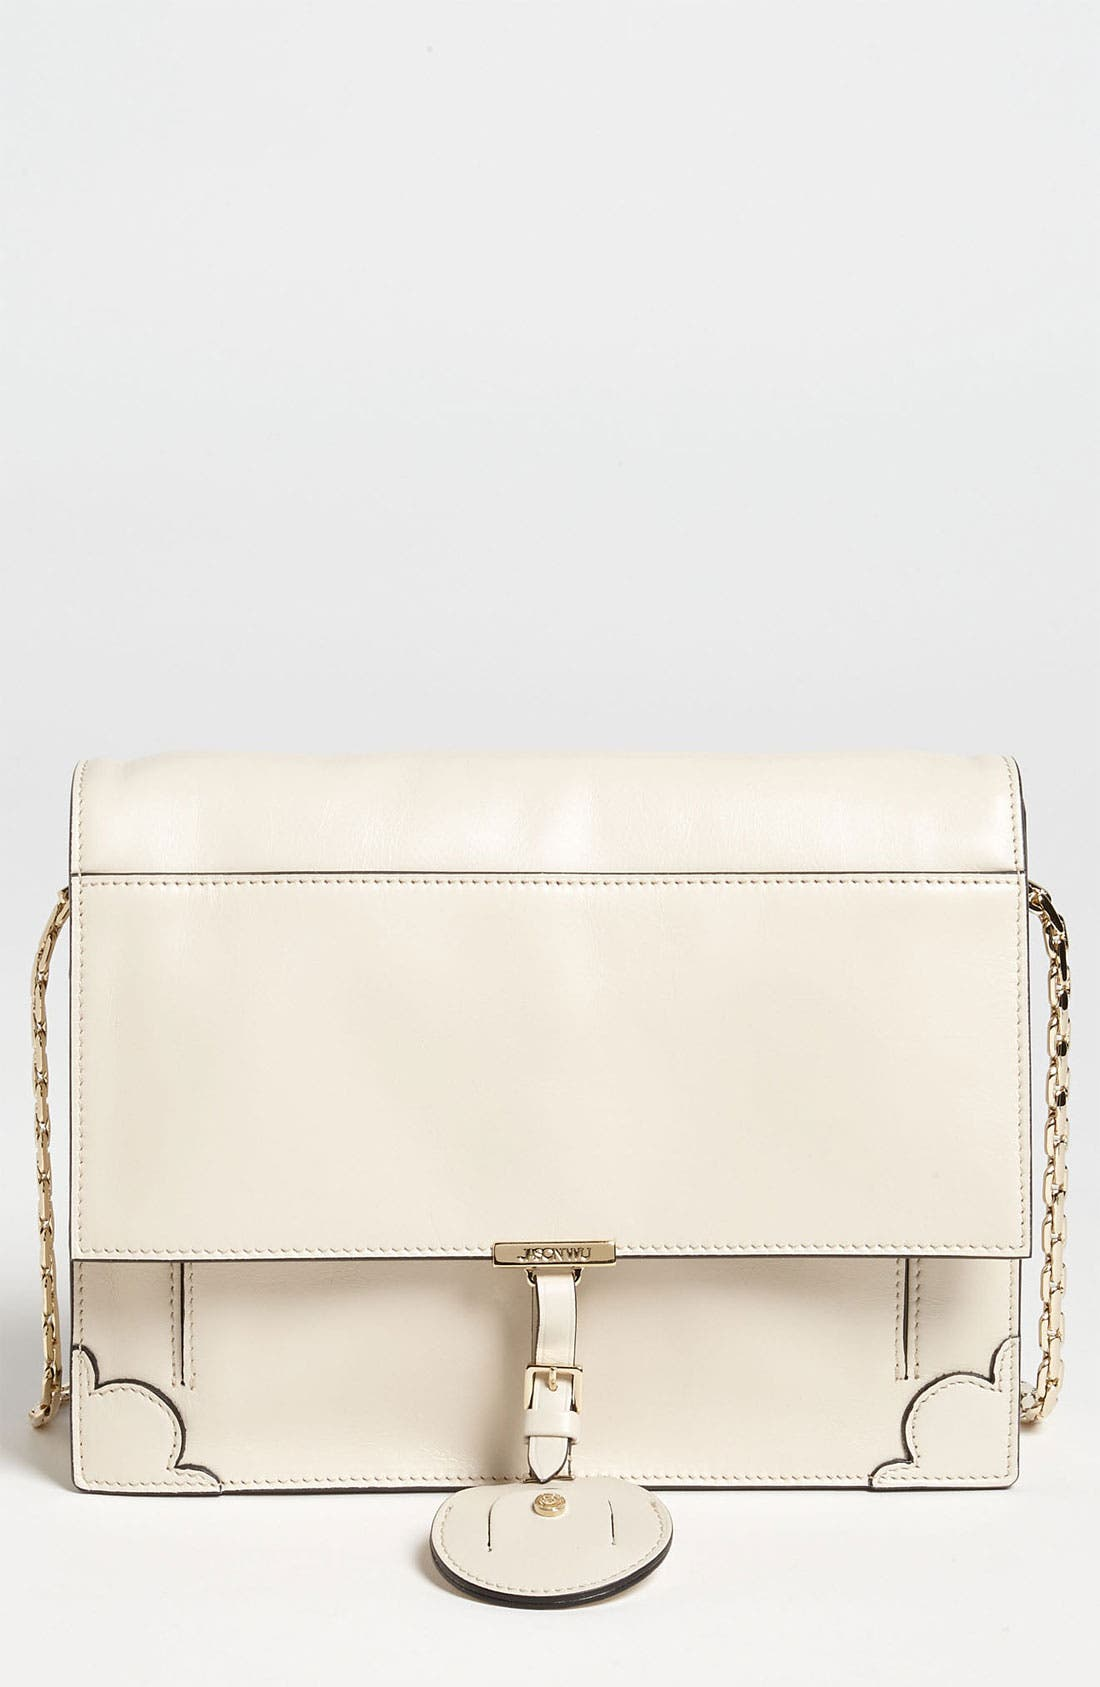 Main Image - Jason Wu 'Jourdan' Leather Crossbody Bag